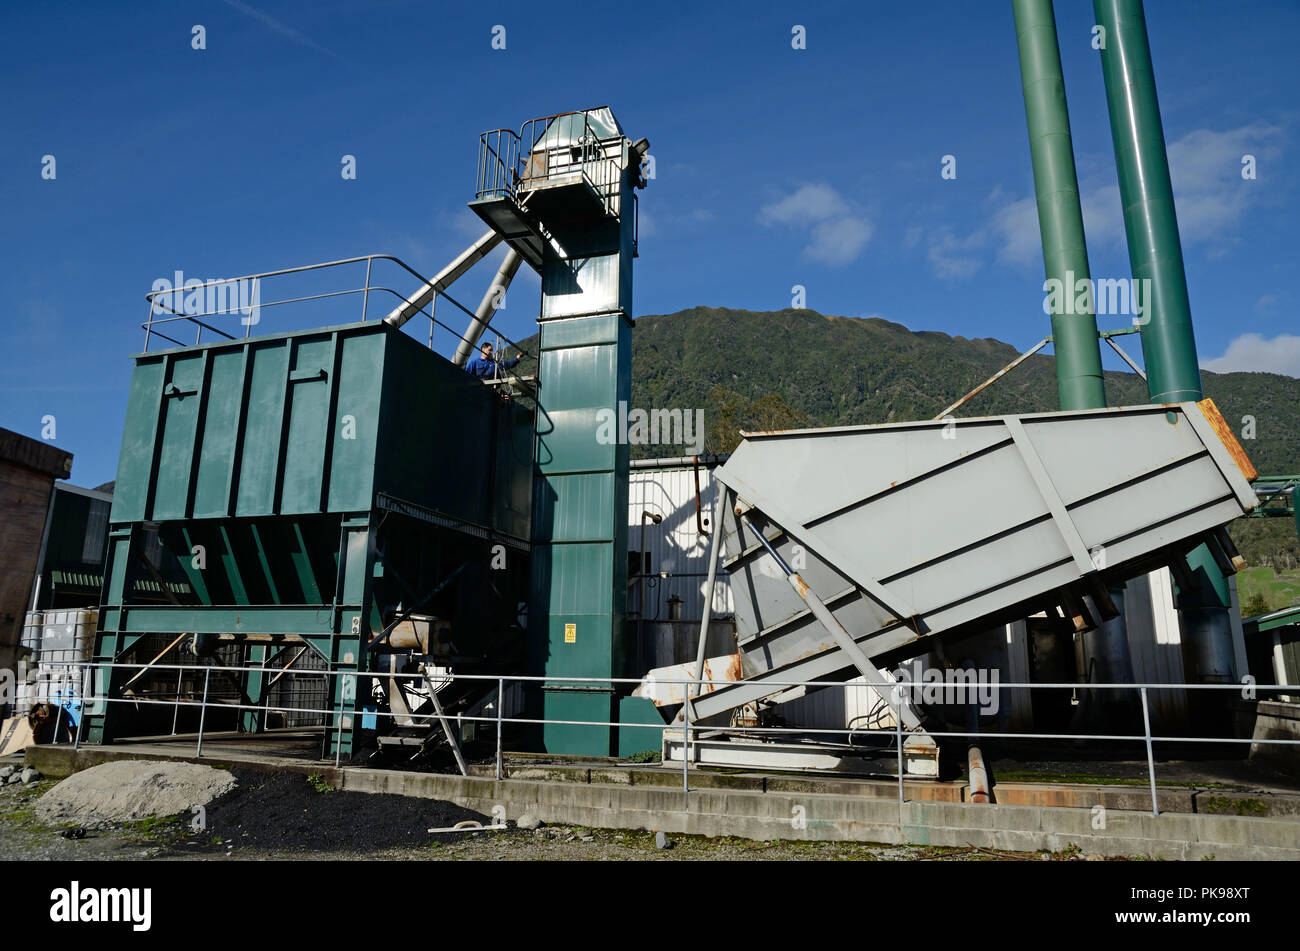 Coal Boilers Stock Photos & Coal Boilers Stock Images - Alamy